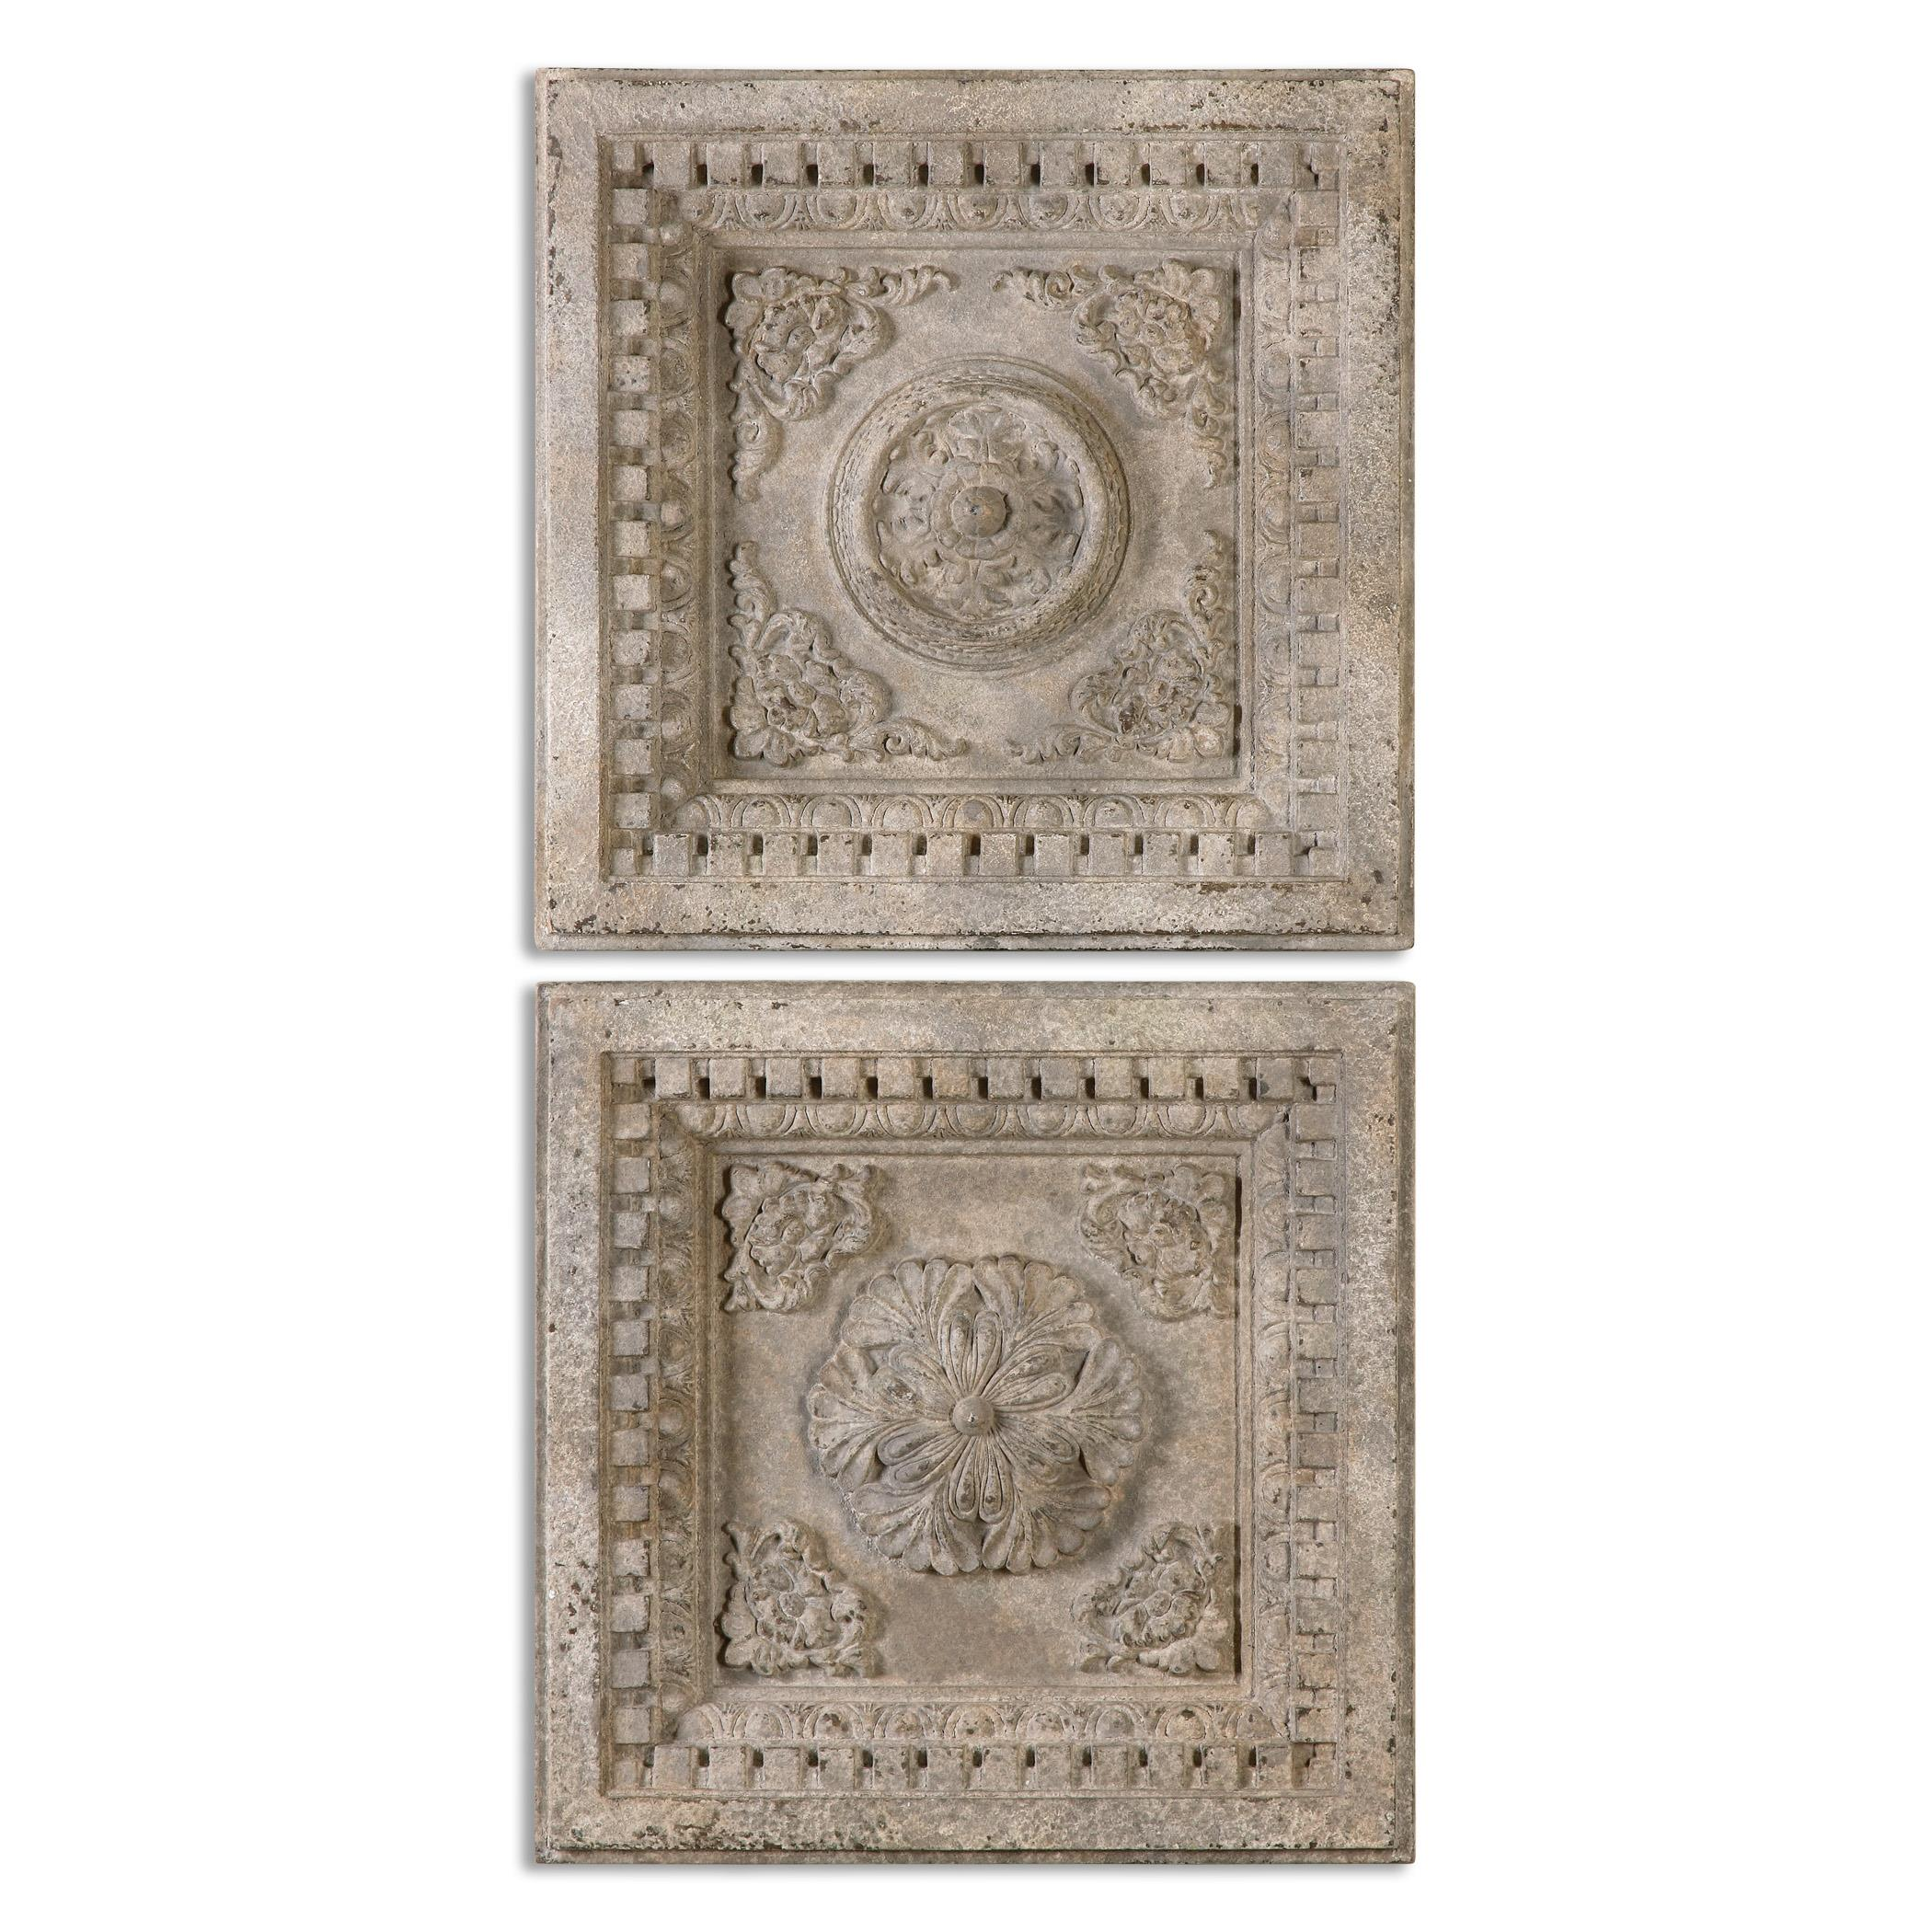 Uttermost Alternative Wall Decor Auronzo Aged Ivory Squares, S/2 - Item Number: 13910